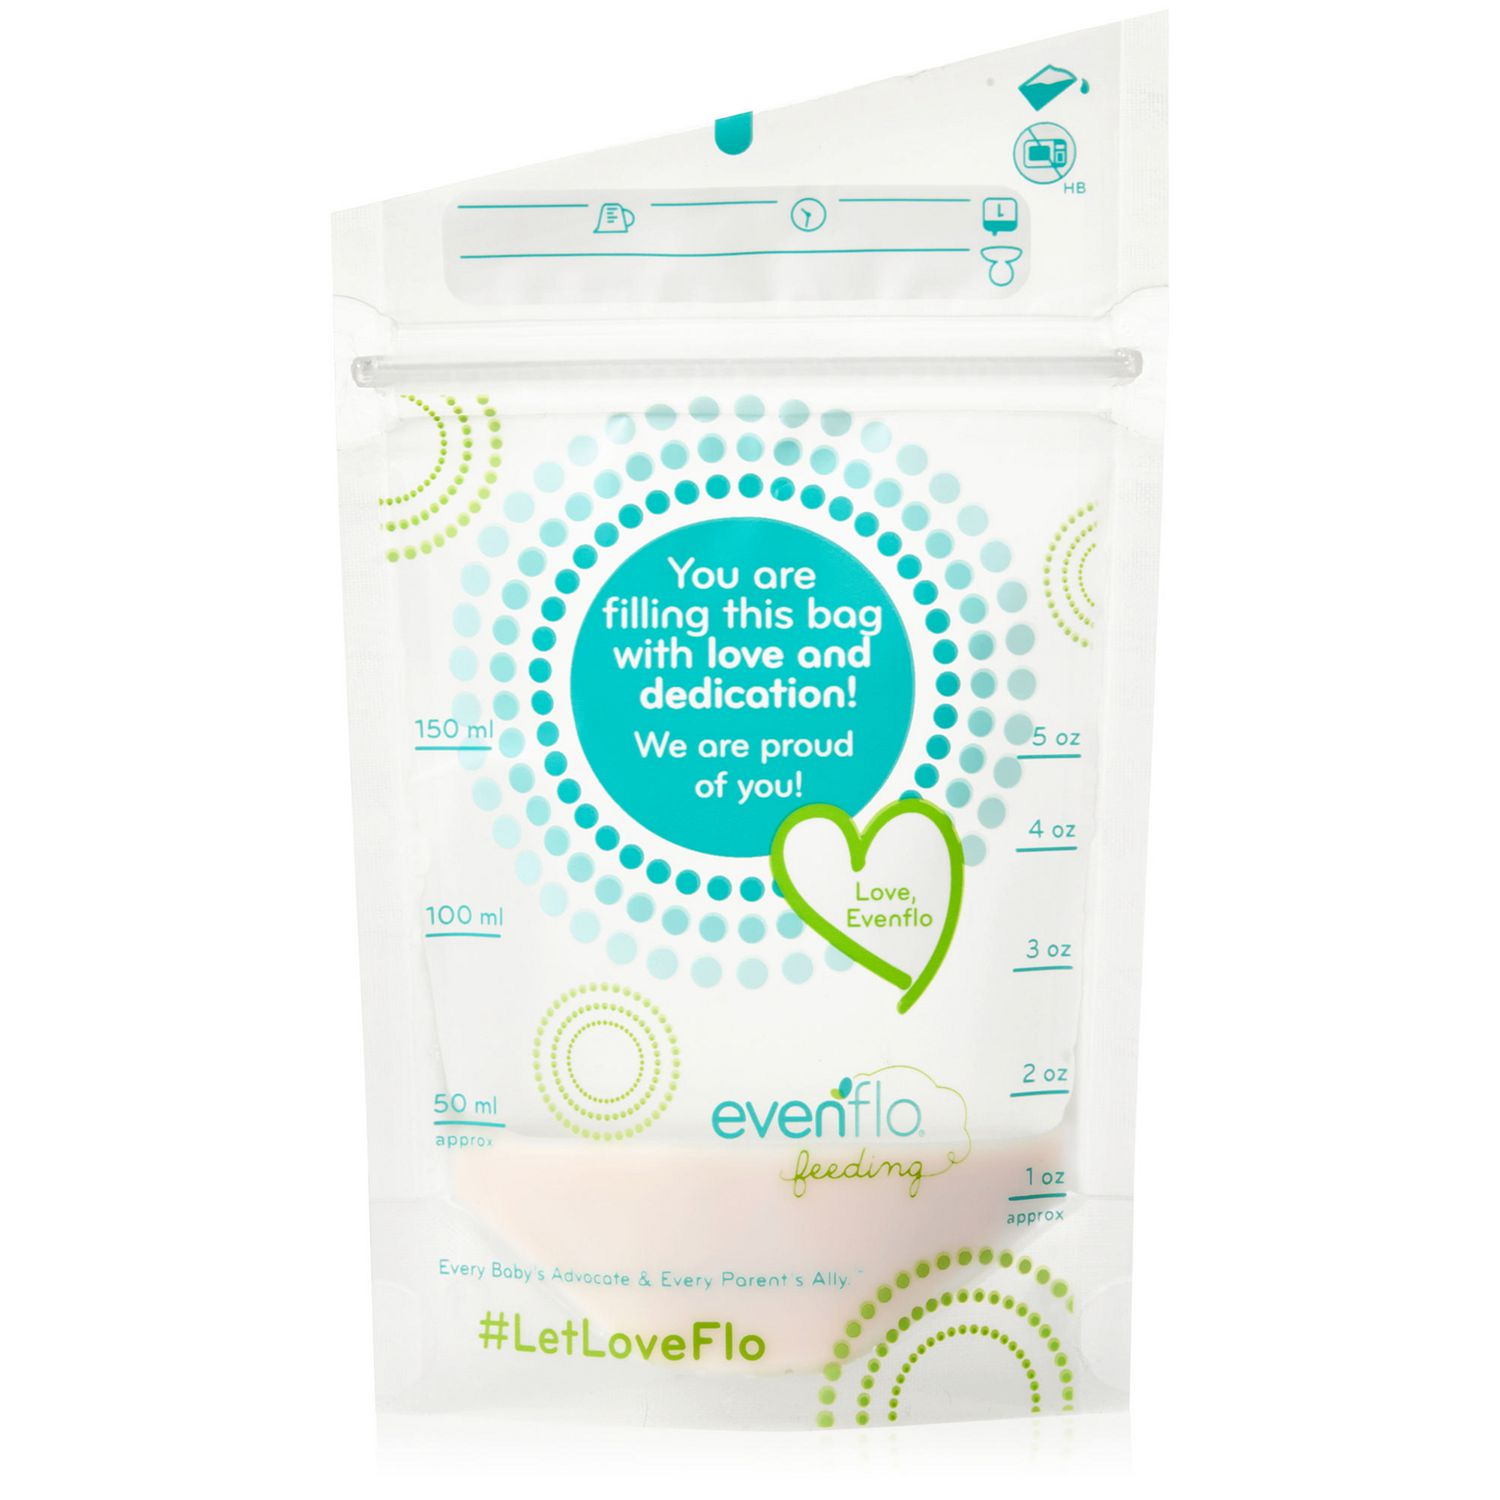 Evenflo Feeding Advanced Breast Milk Storage Bags  Walmart Canada-2174